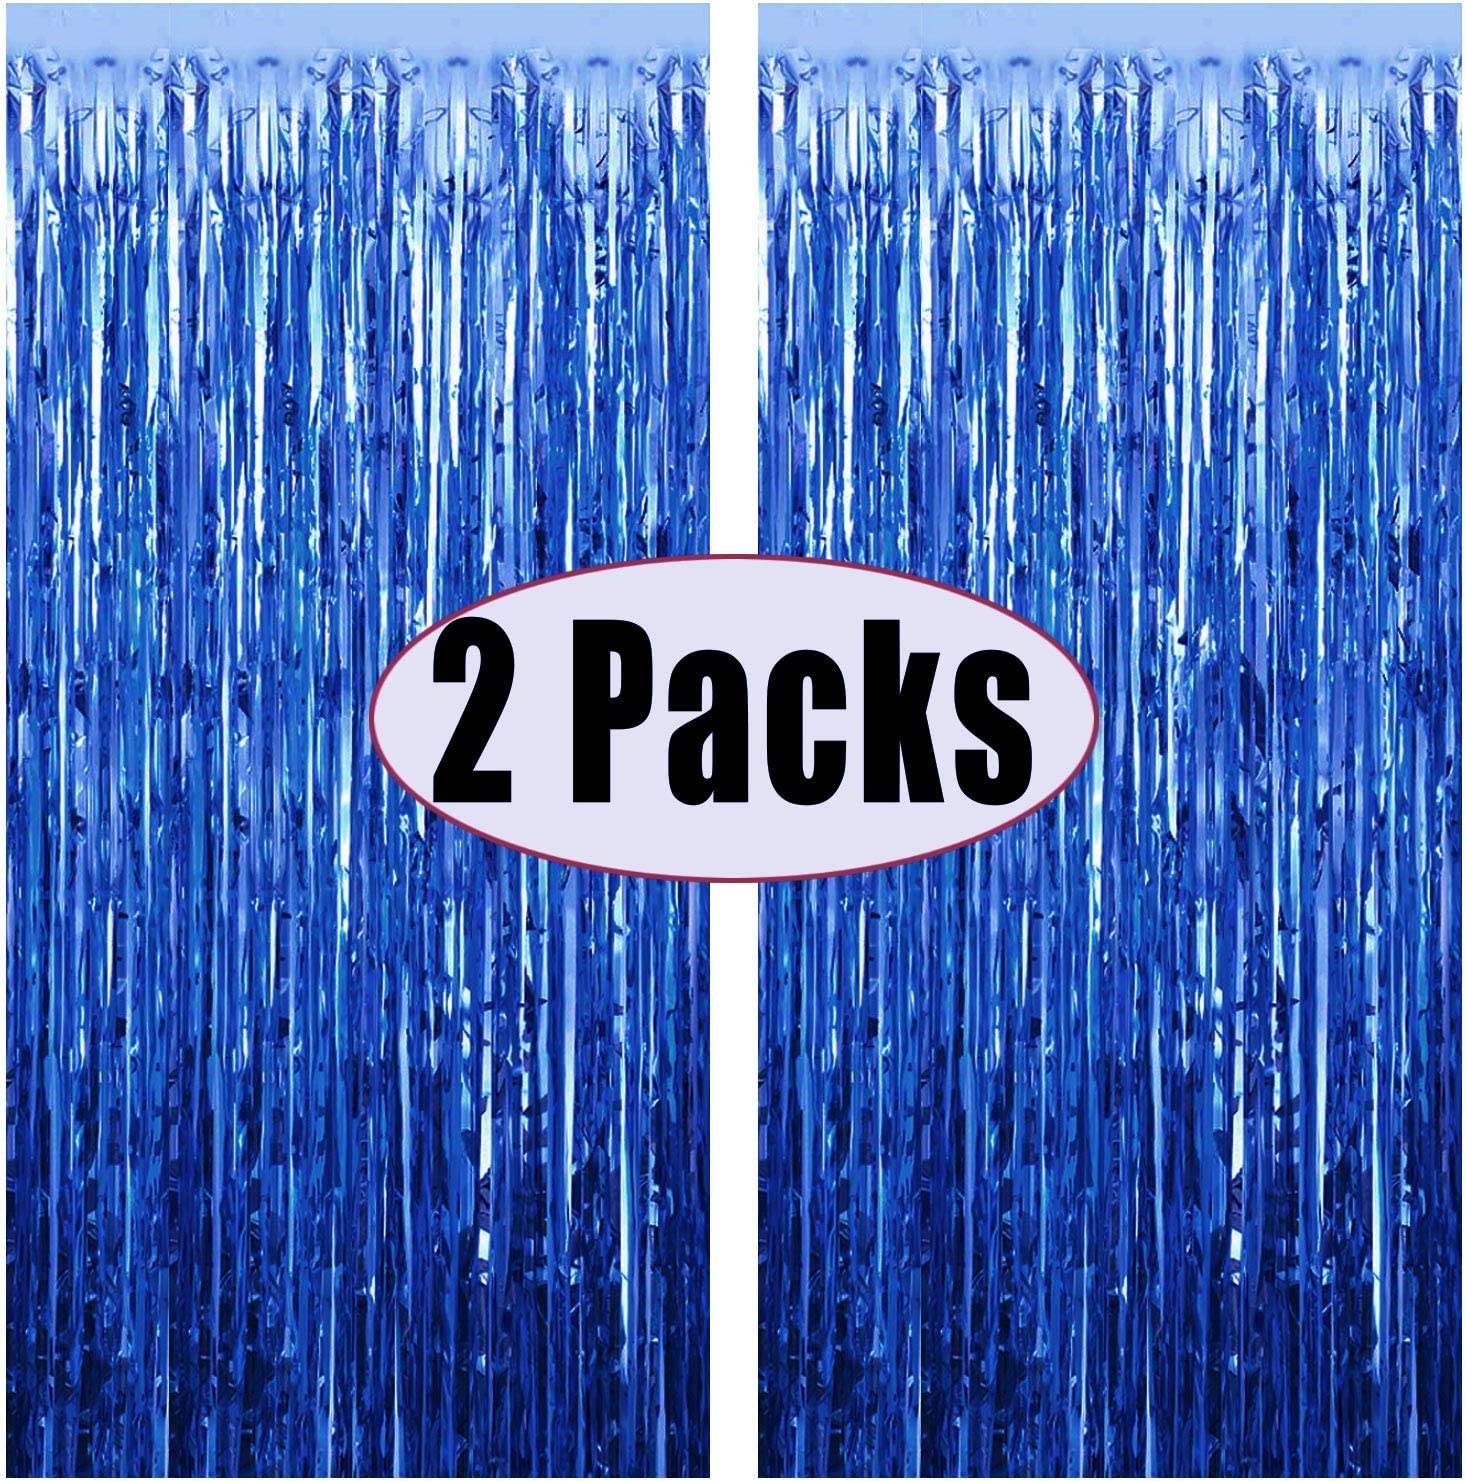 FECEDY 2pcs 3ft x 8.3ft Navy Blue Metallic Tinsel Foil Fringe Curtains Photo Booth Props for Birthday Wedding Engagement Bridal Shower Baby Shower Bachelorette Holiday Celebration Party Decorations